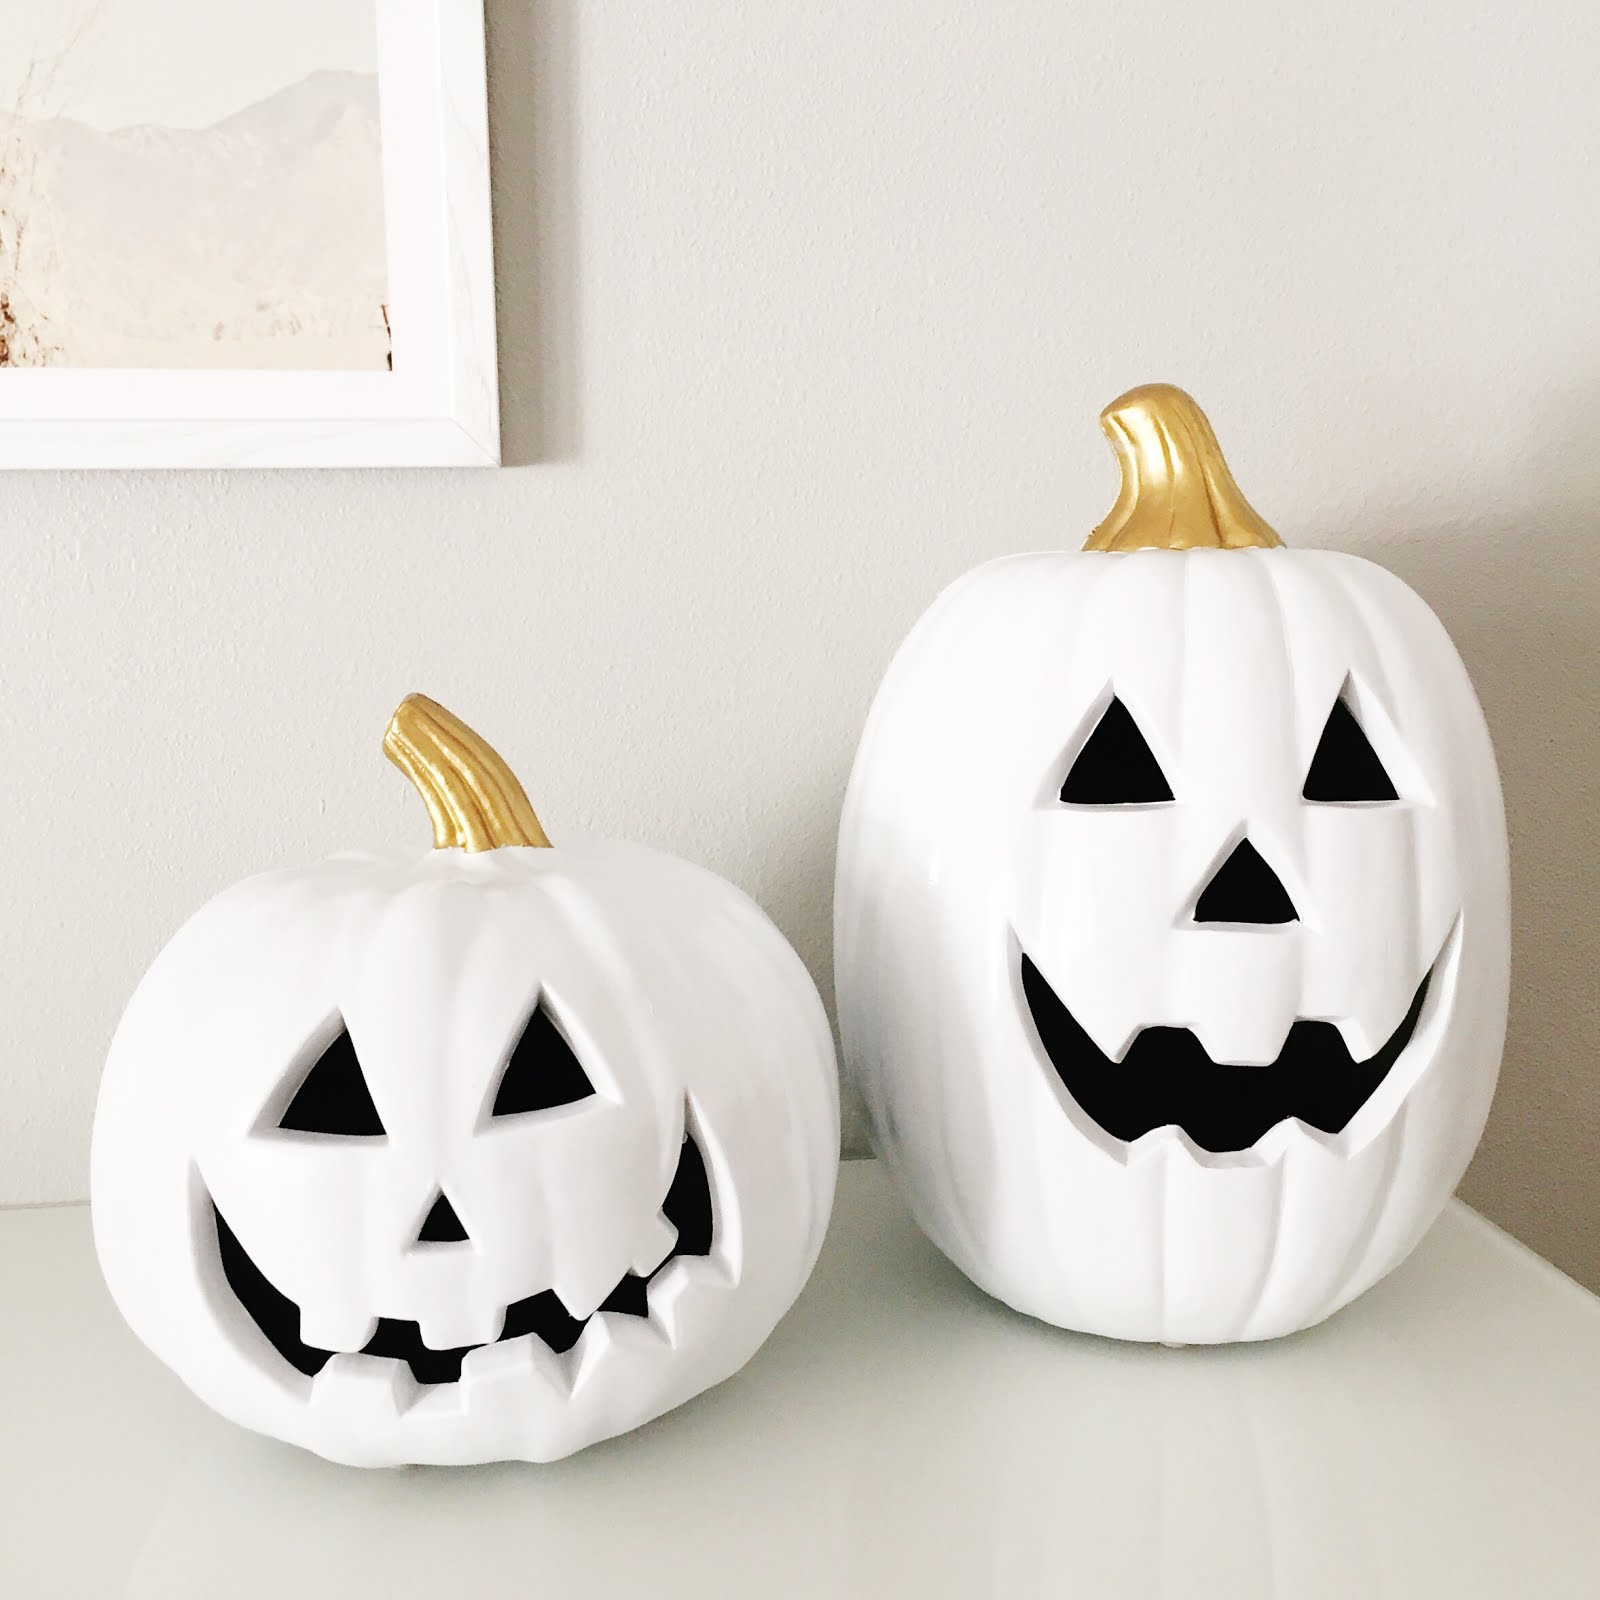 Petite Insanities DIY White and Gold Pumpkins